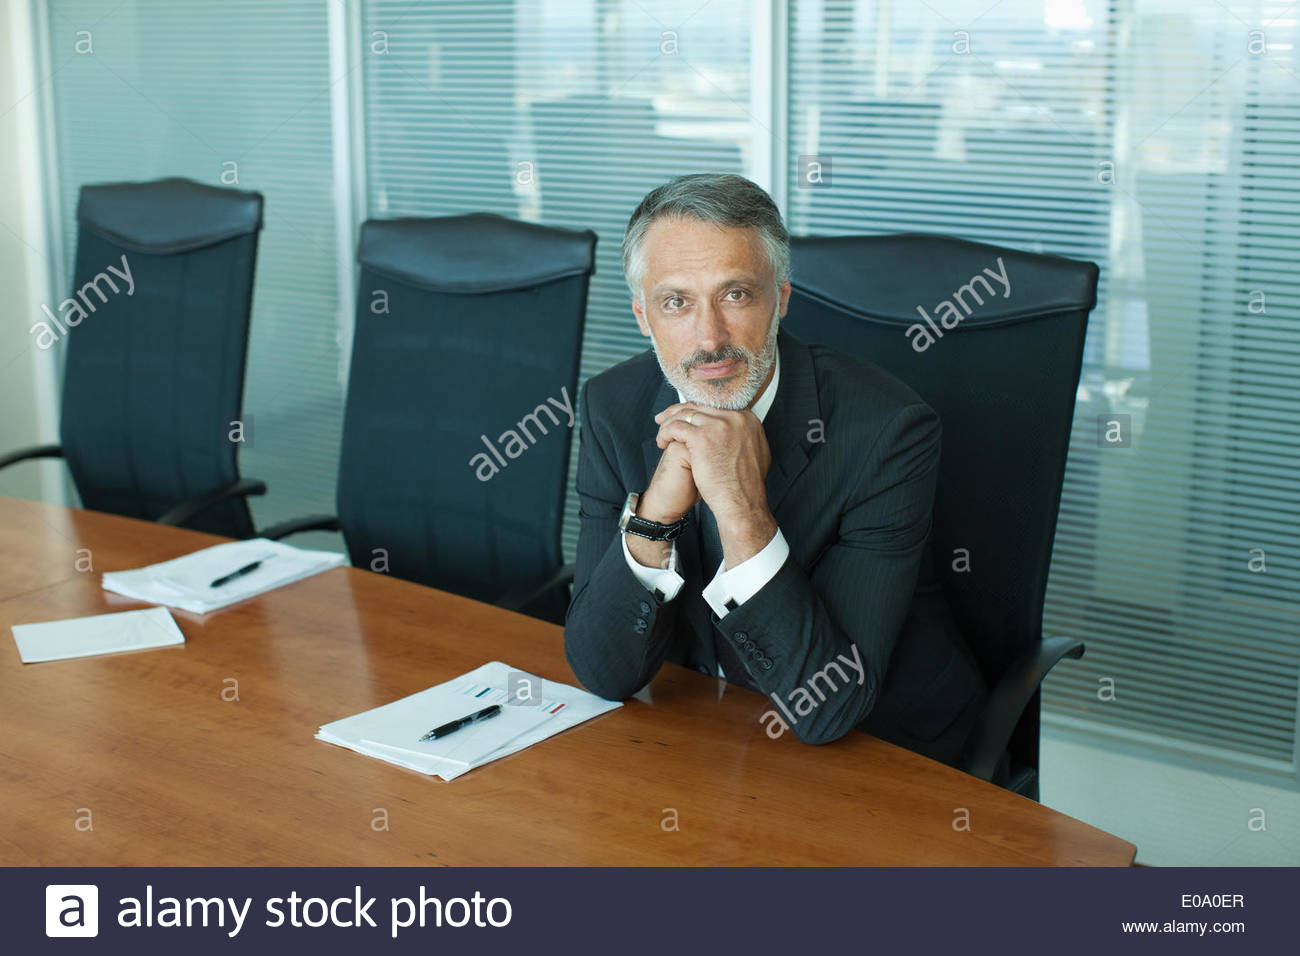 Portrait of confident businessman with hands clasped - Stock Image